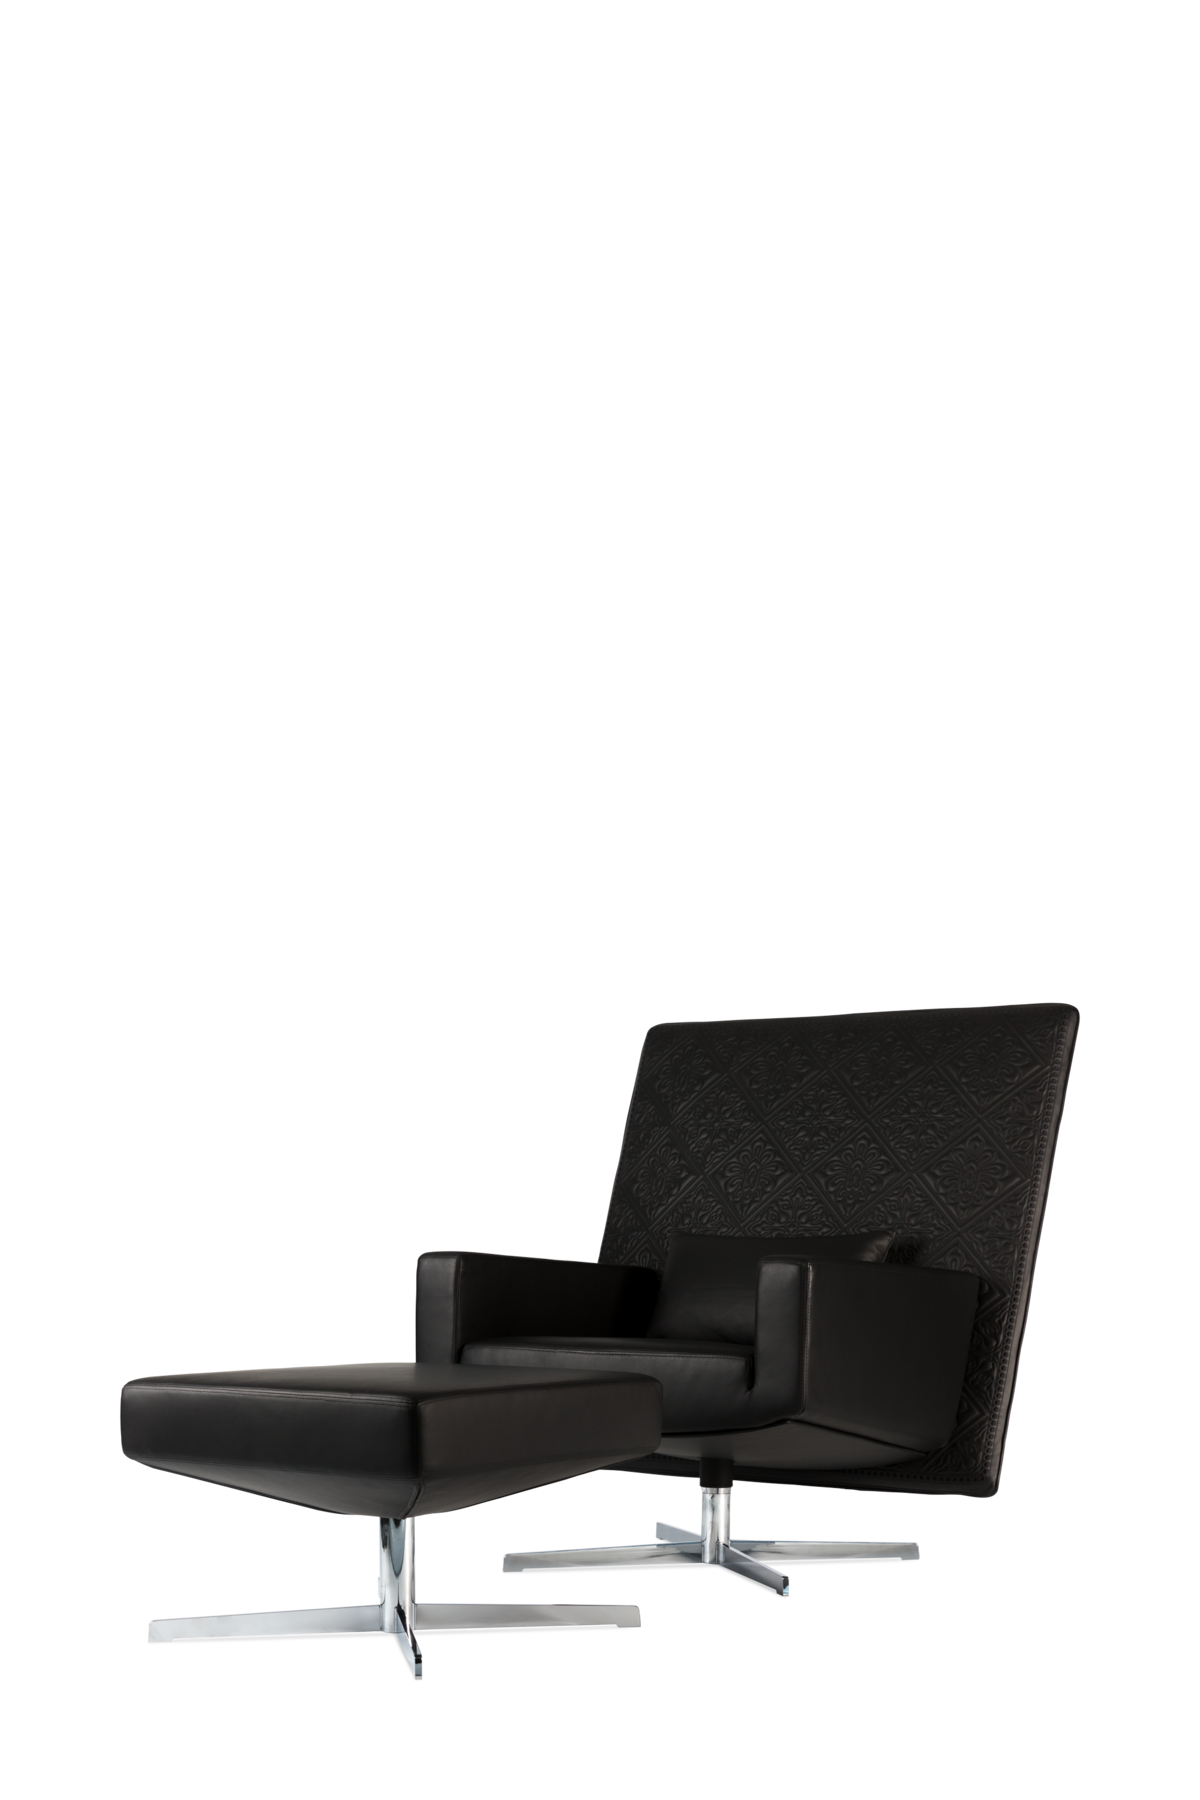 Jackson Chair black leather with front front view